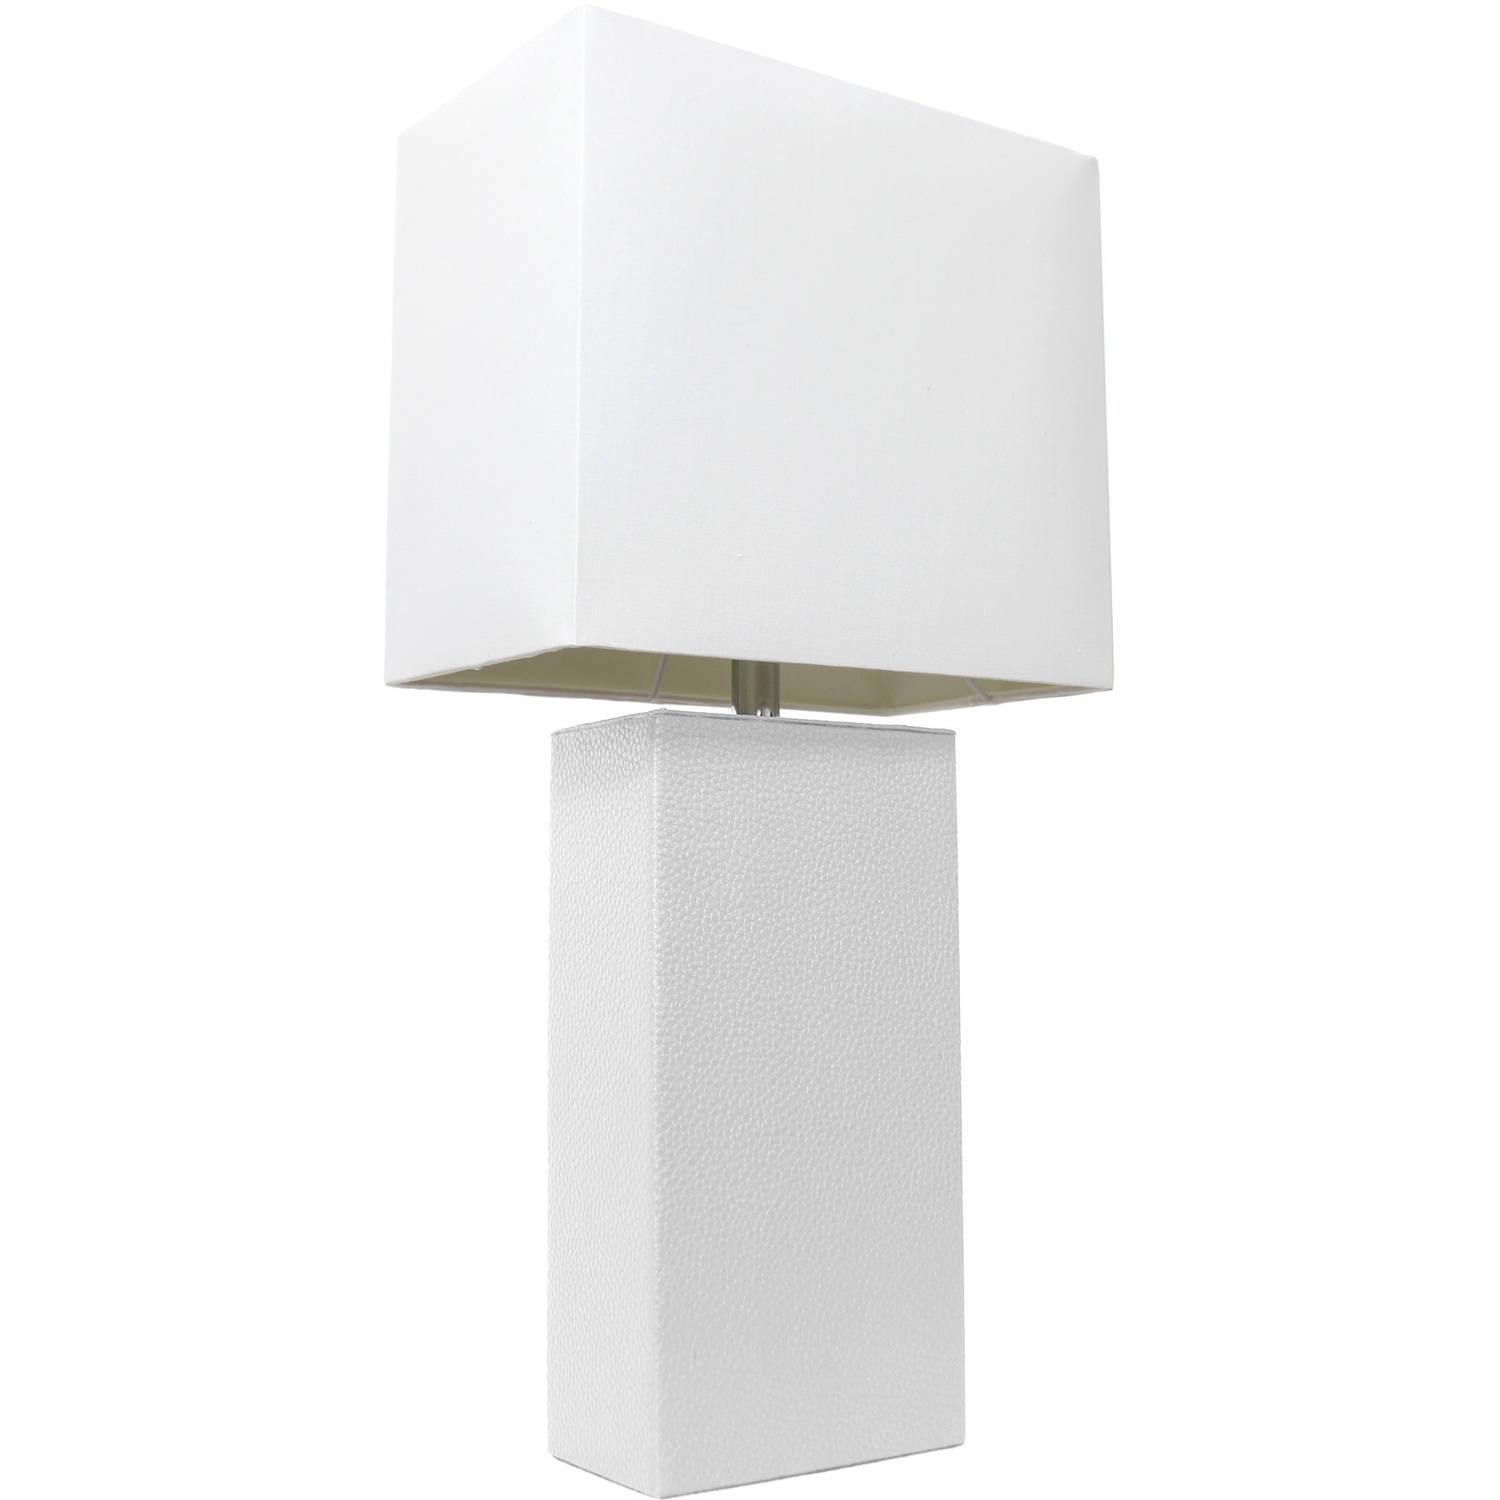 Elegant Designs Modern Leather Table Lamp With White Fabric Shade, White    Walmart.com